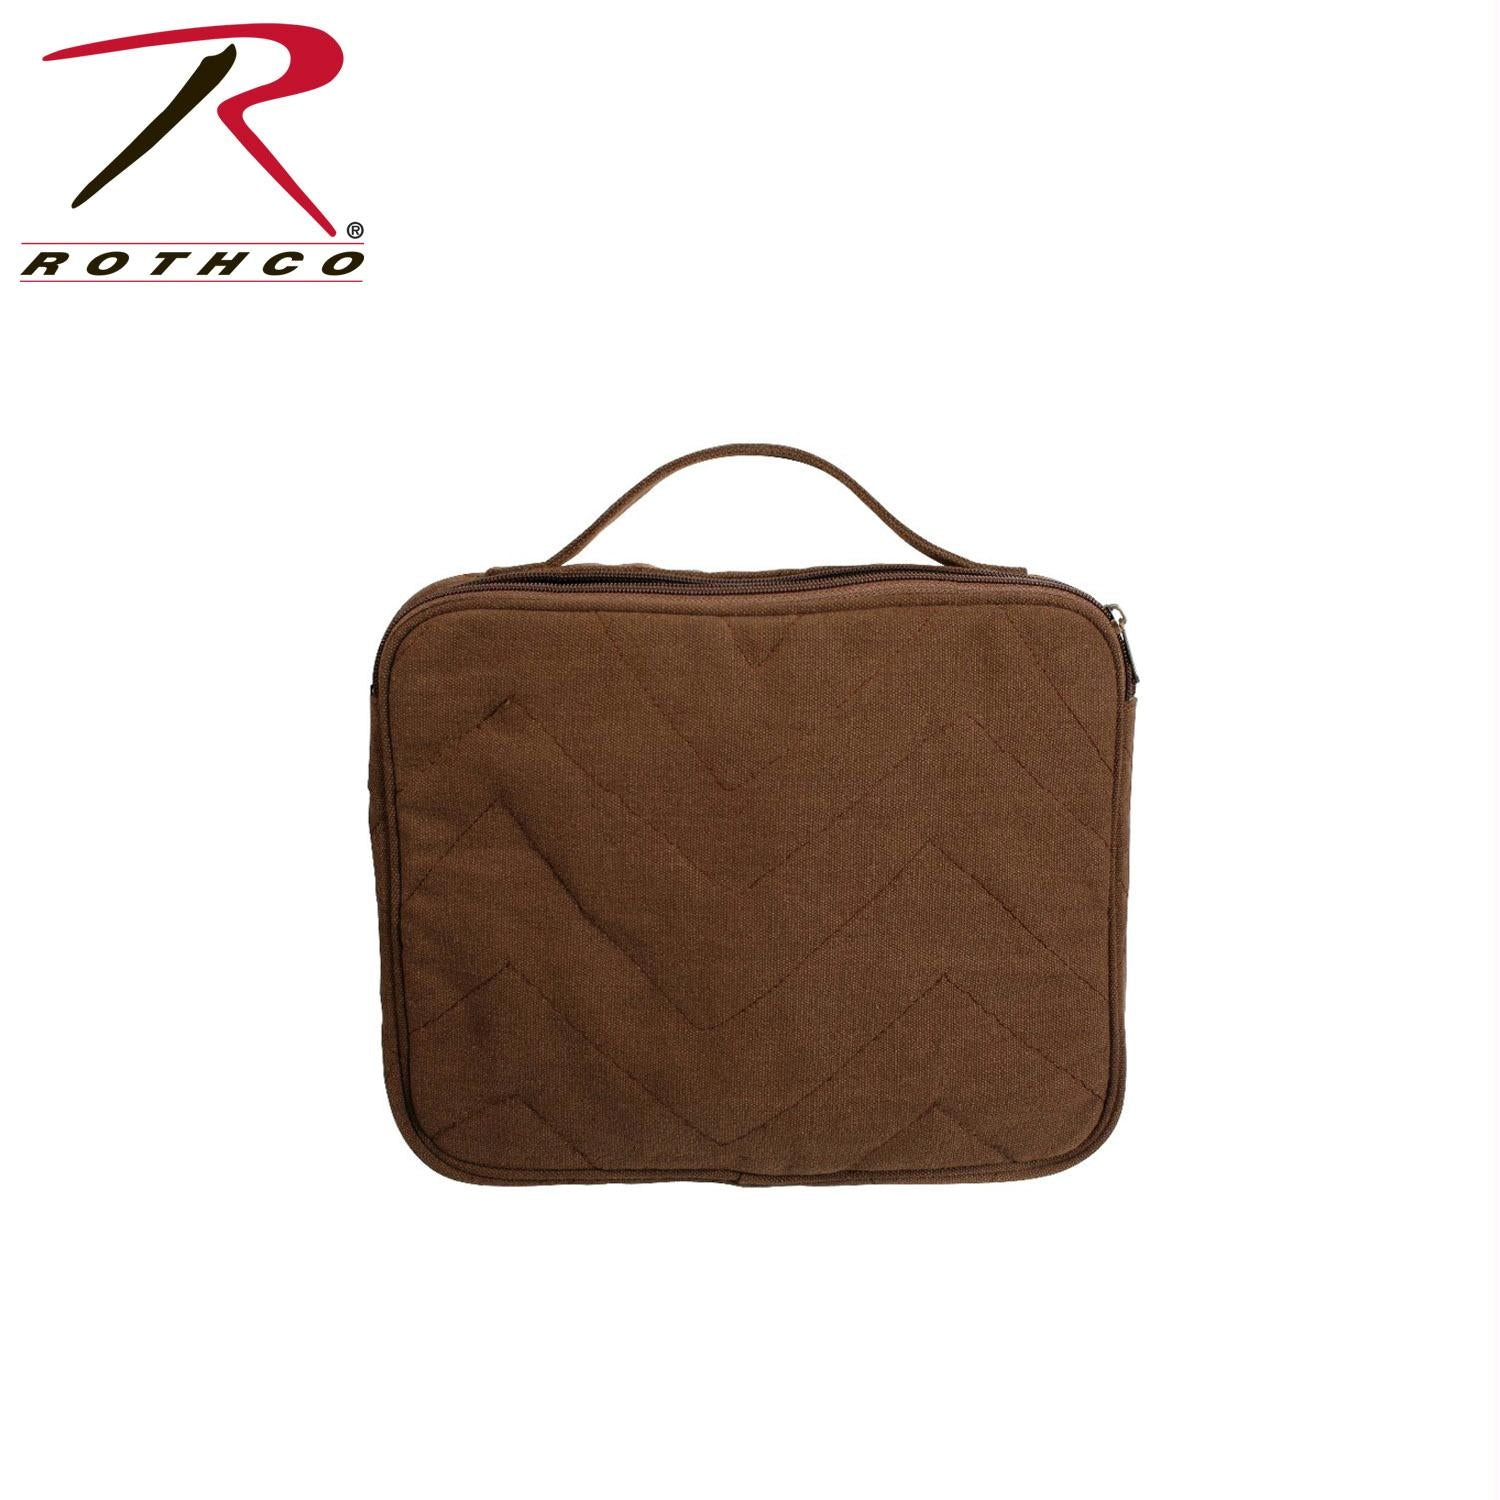 Rothco Vintage Canvas iPad / Netbook Pouch - Brown